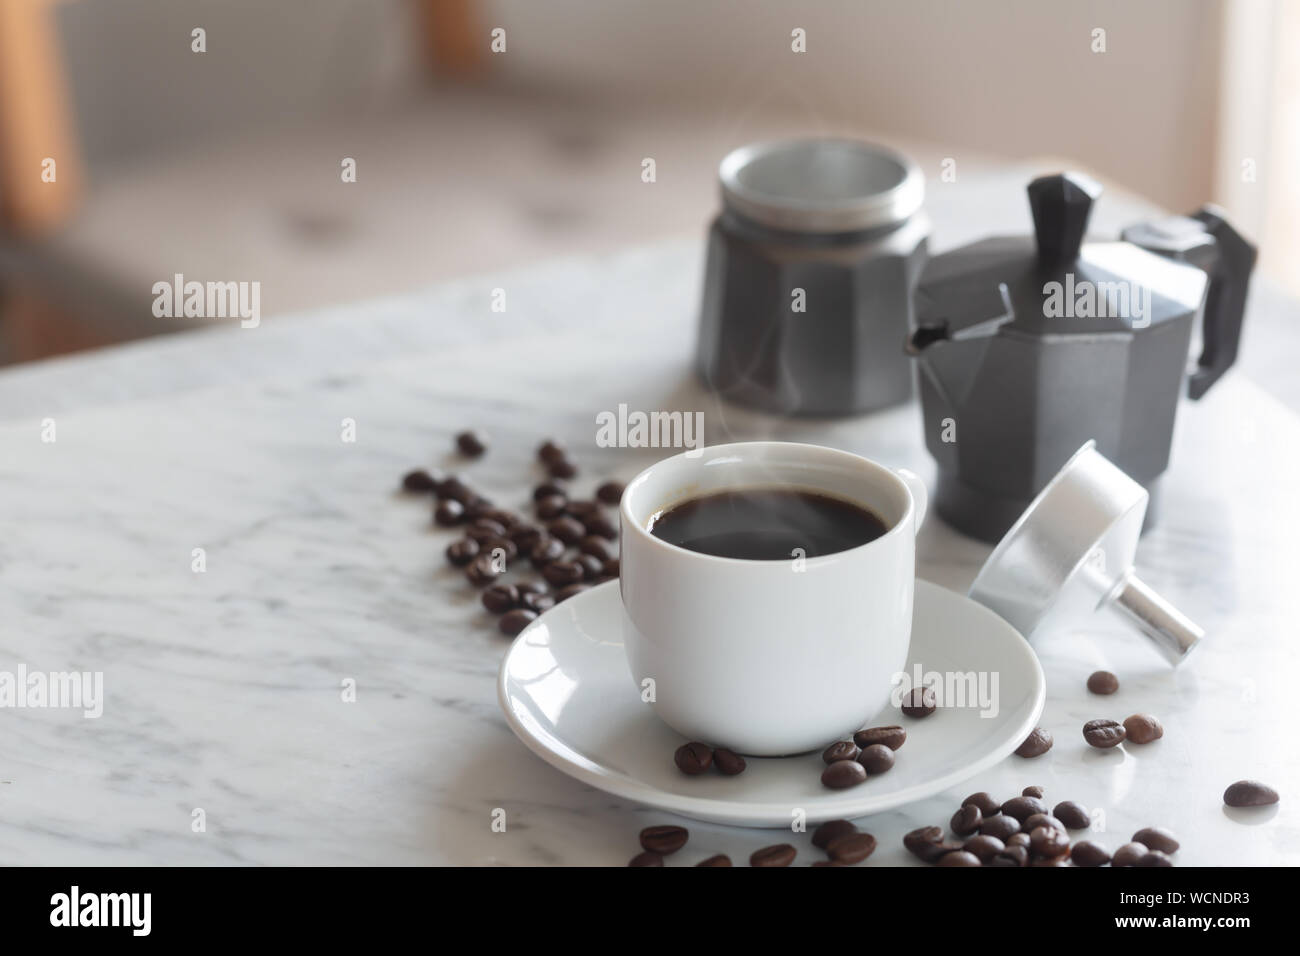 Hot Cup Of Espresso Or Americano Coffee In A Traditional White Cup